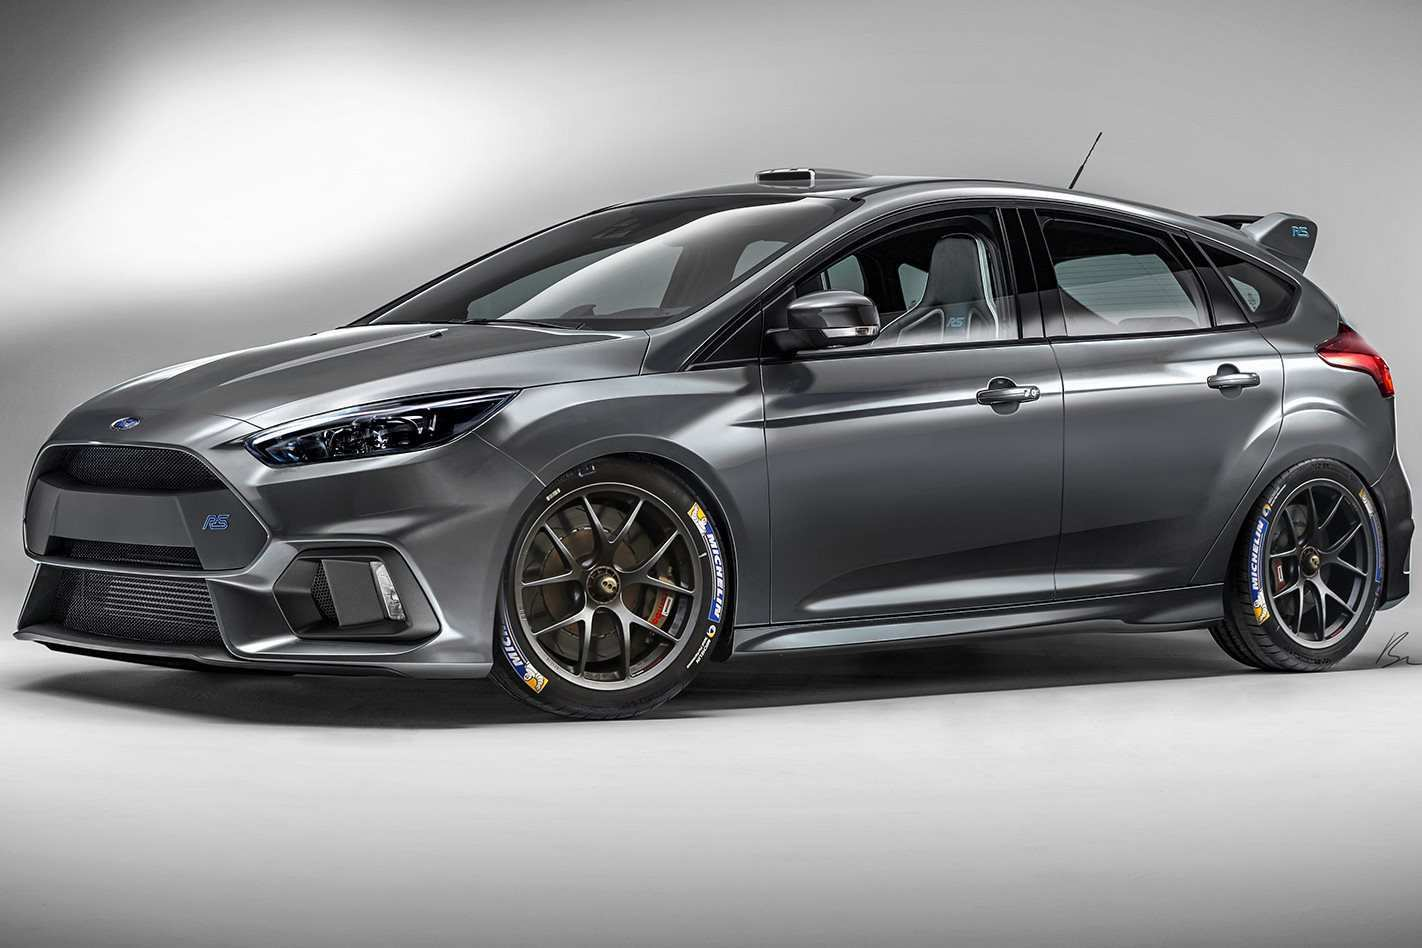 48 New 2019 Ford Focus Rs500 Release with 2019 Ford Focus Rs500